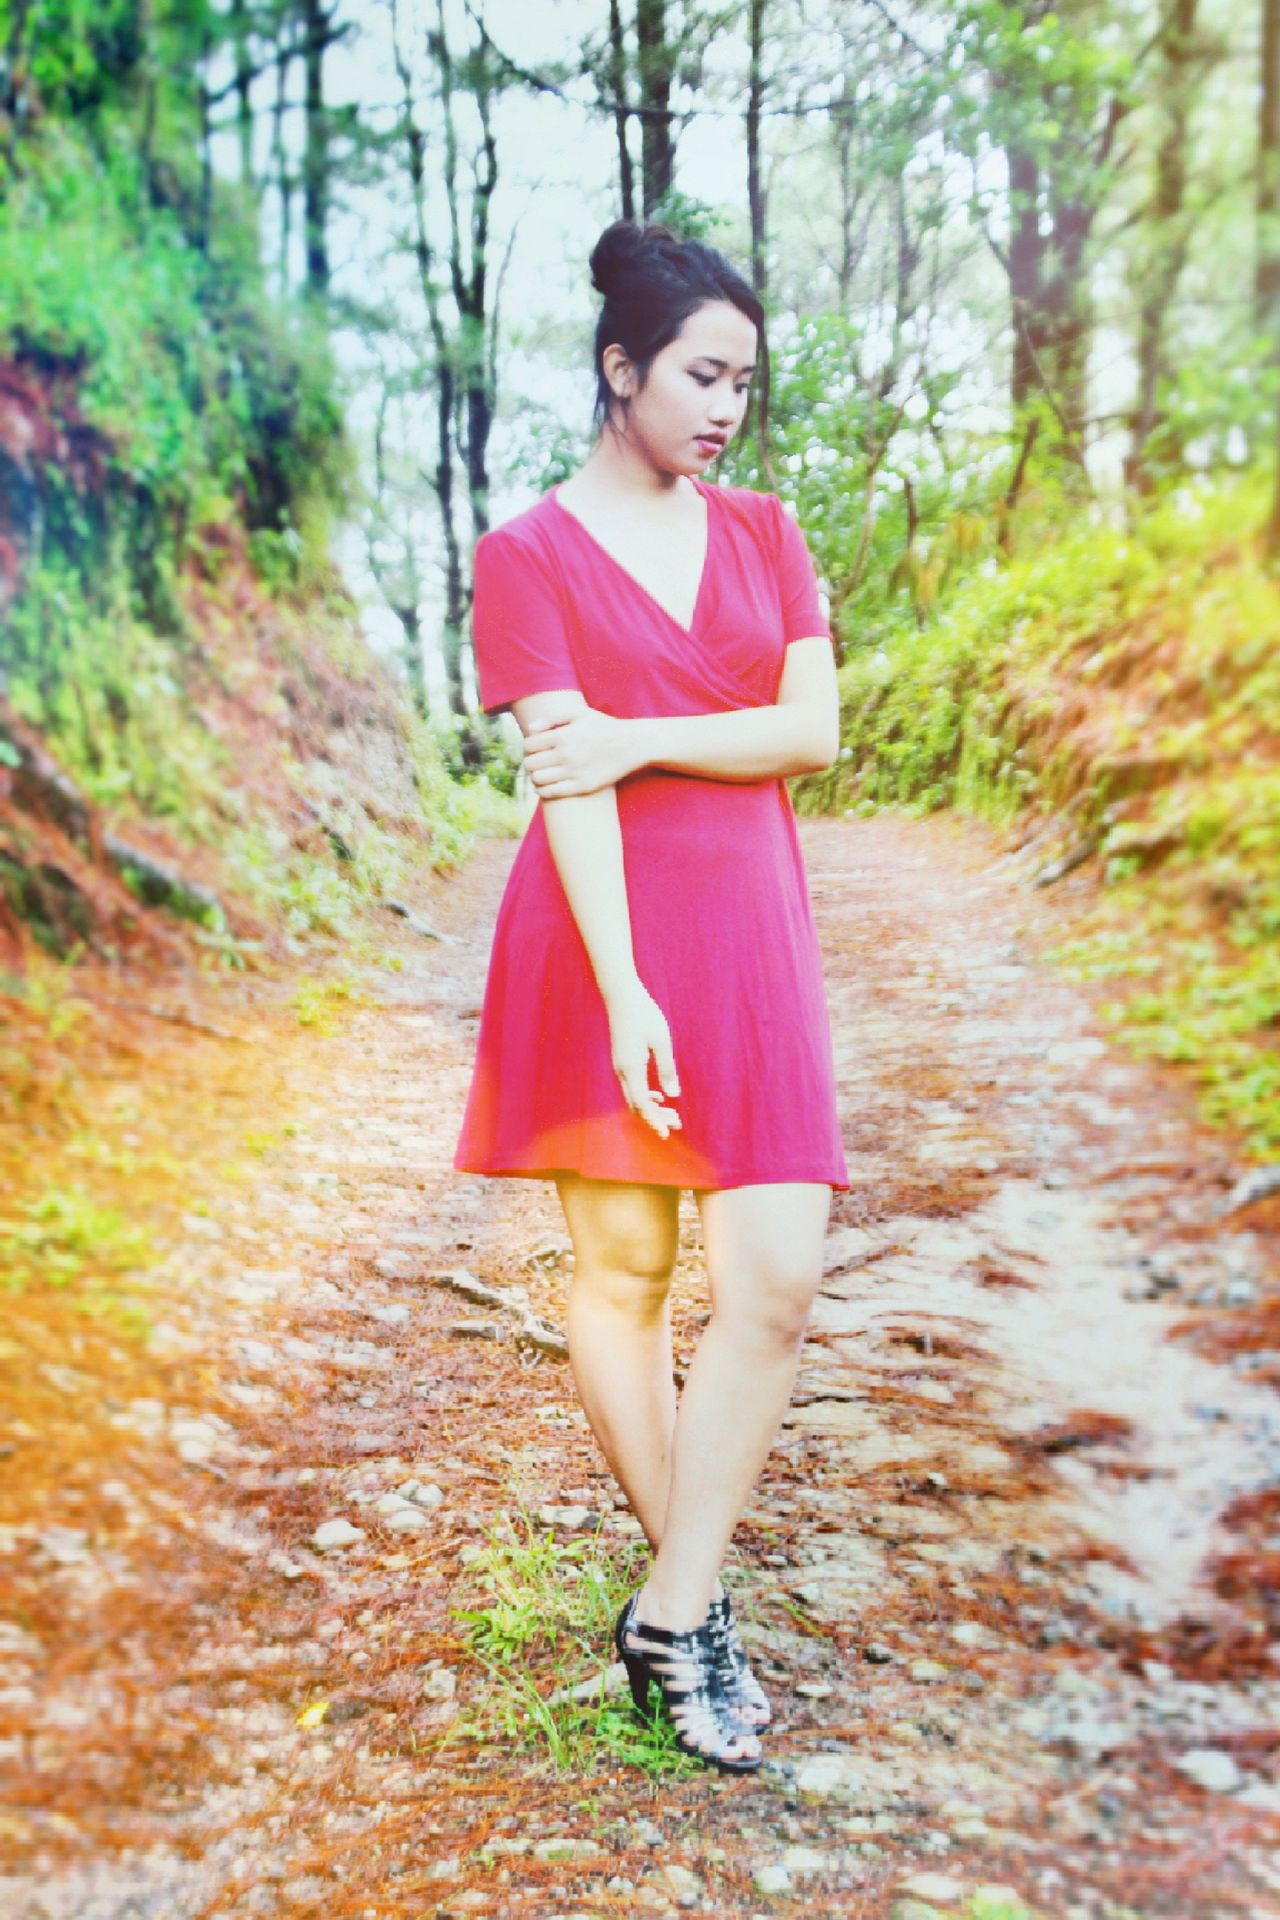 Young Women One Person Outdoors Nature Beauty Beauty In Nature One Woman Only Young Adult Model Photography Beauty In Nature Country Life Tree